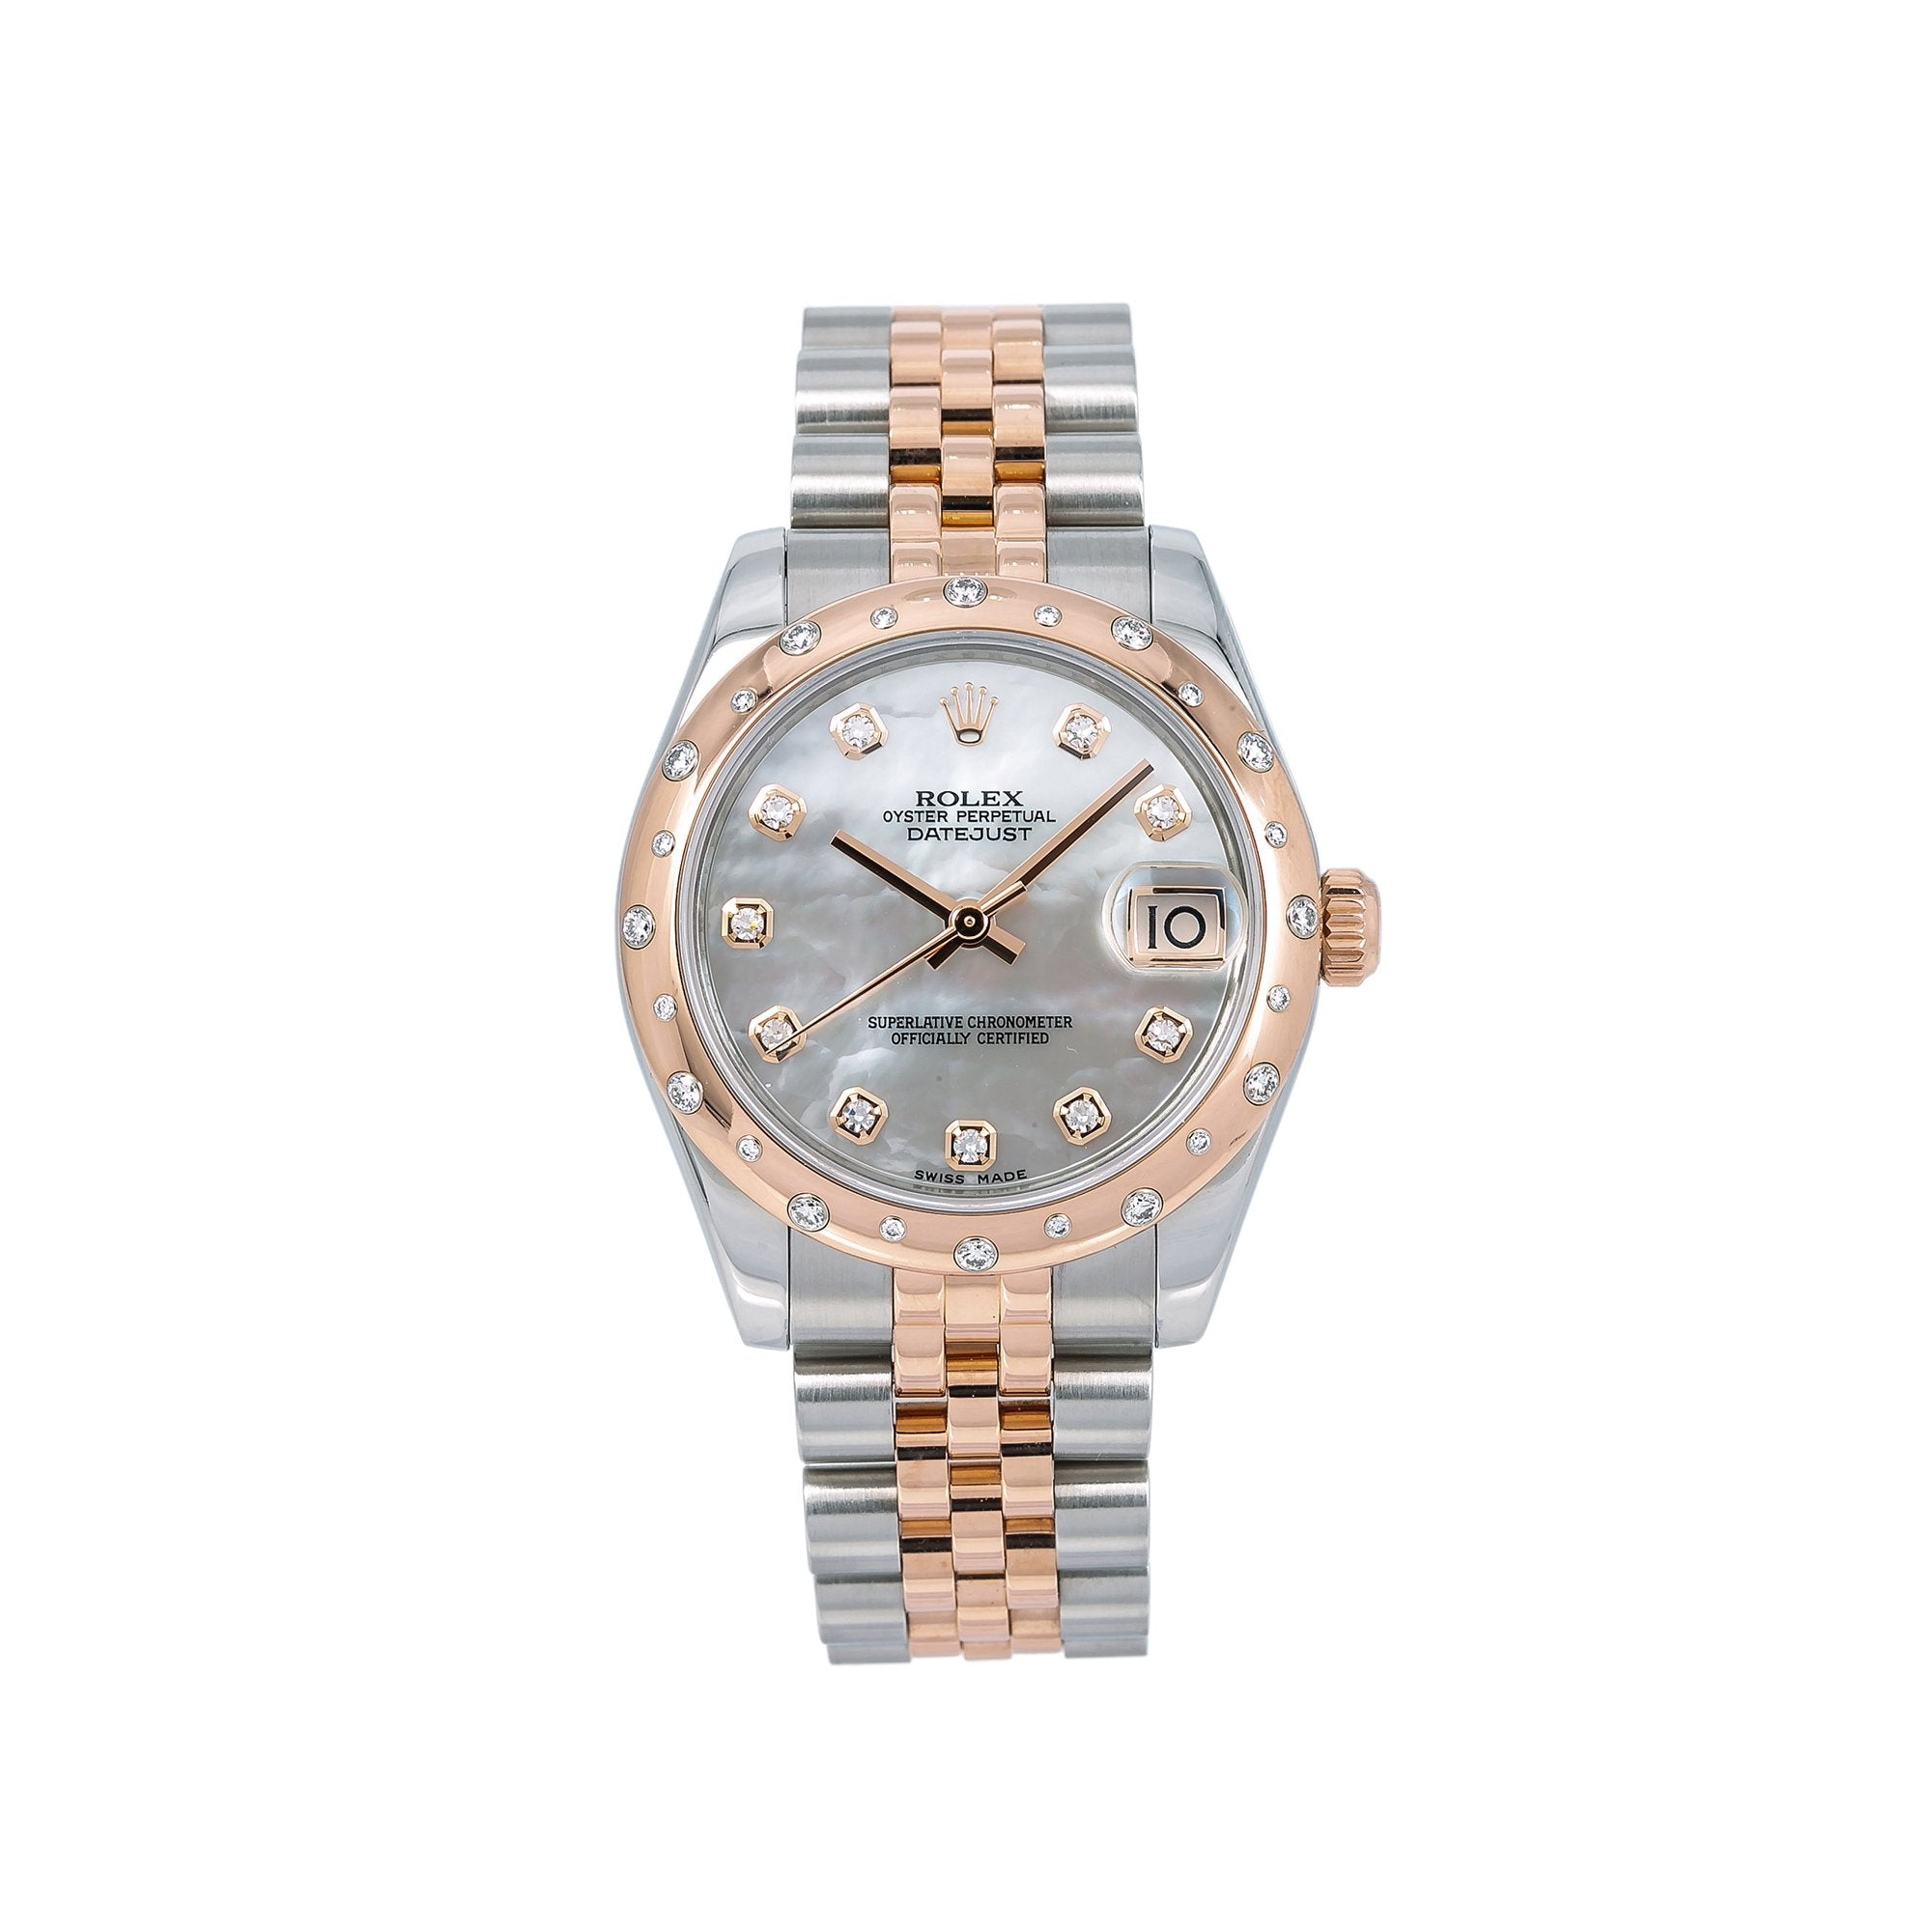 Rolex Lady-Datejust Diamond Watch, 178341 31mm, Silver Diamond Dial With Two Tone Jubilee Bracelet